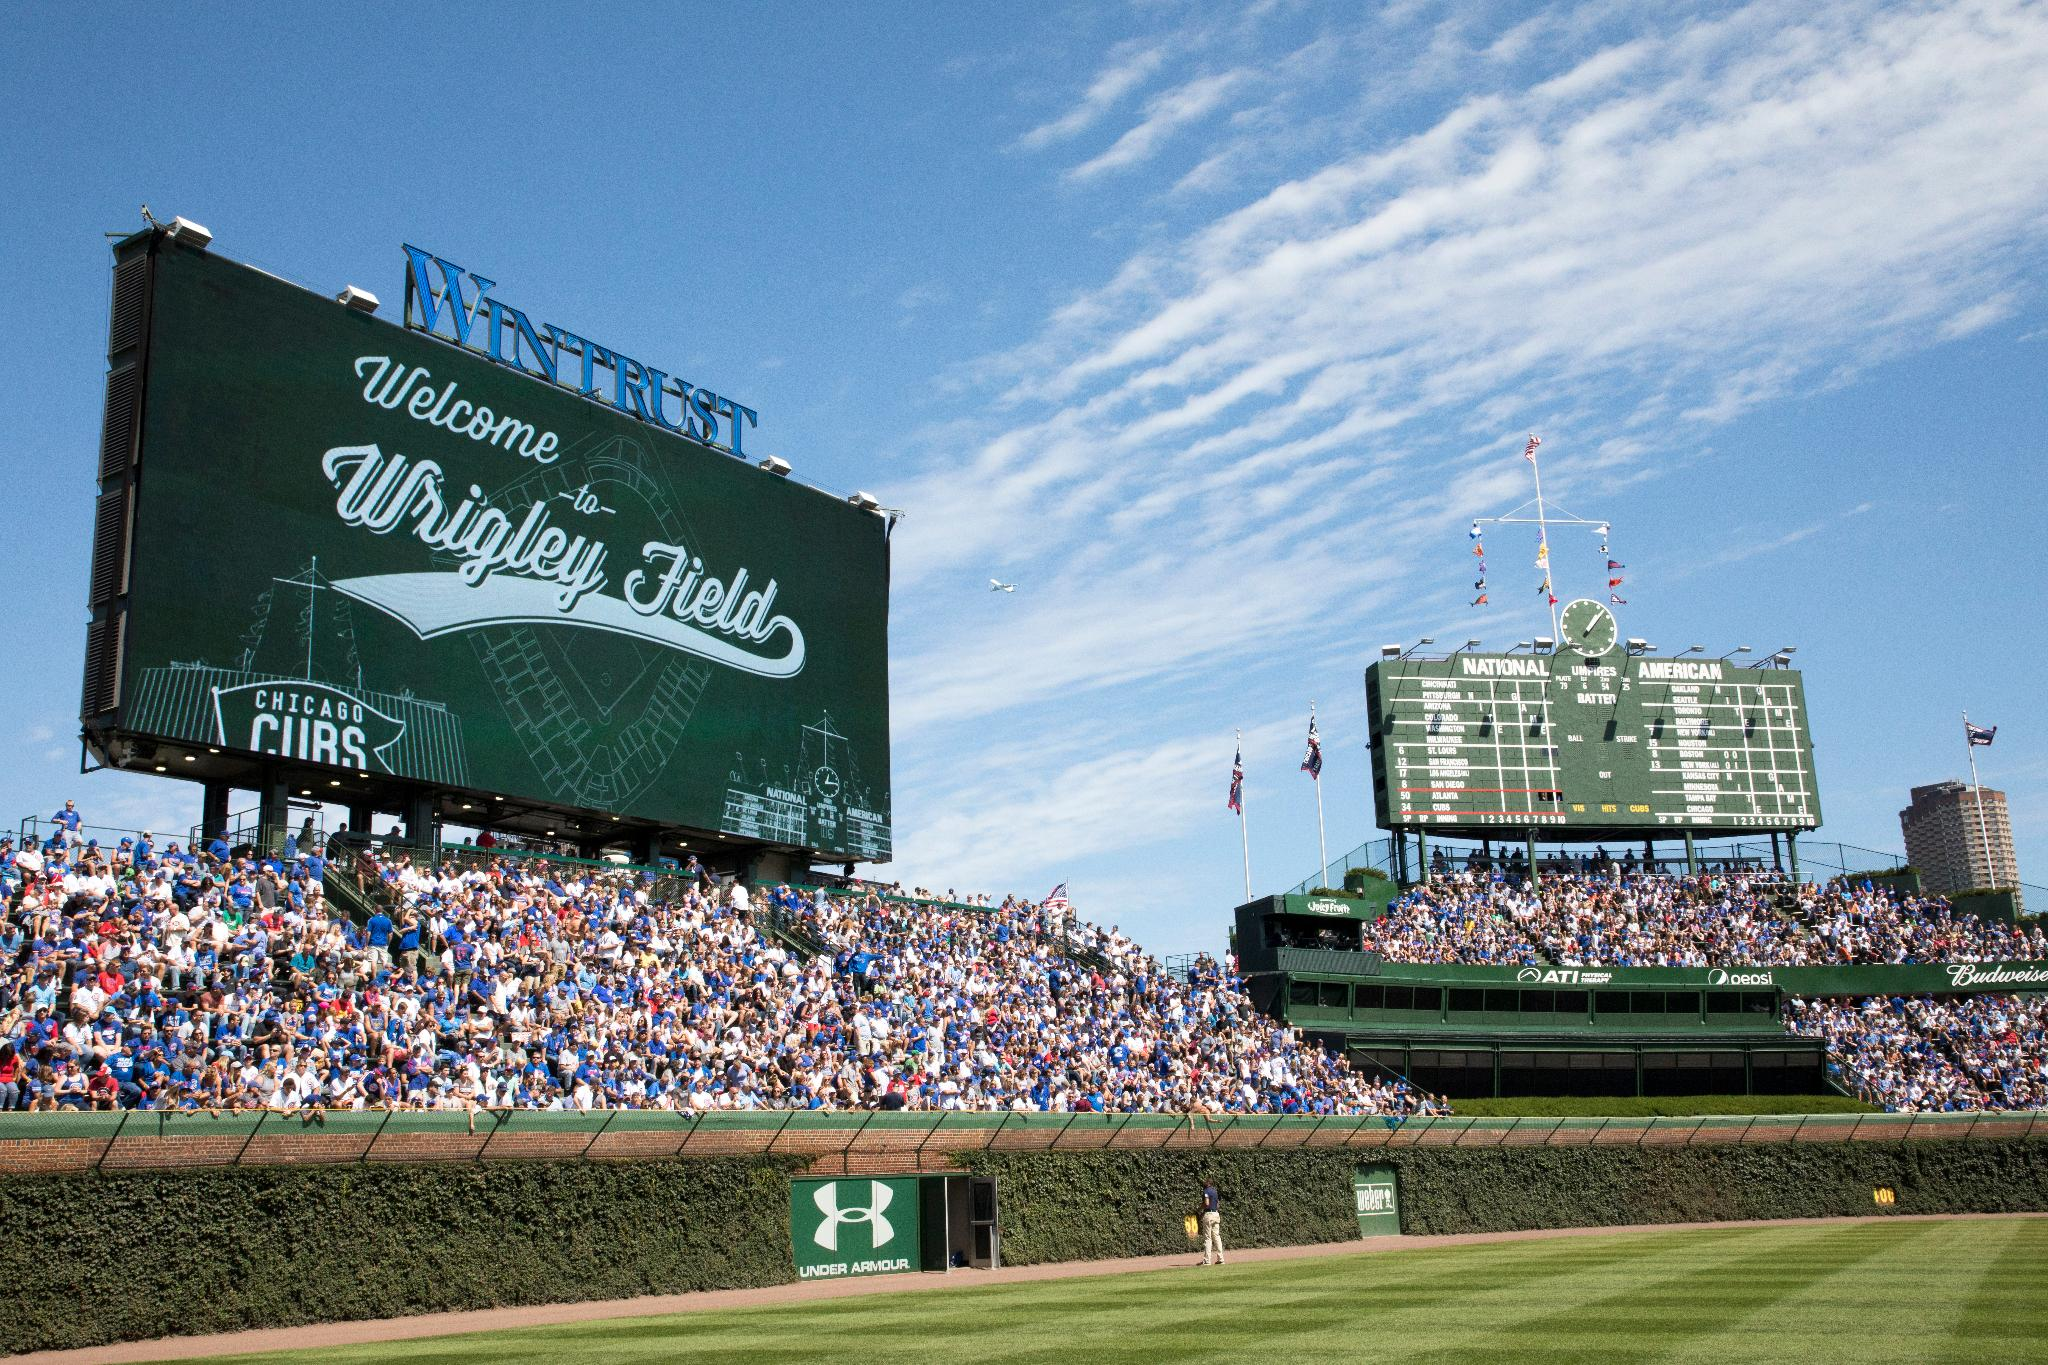 I'd rather be at #WrigleyField. https://t.co/y56WO03OEZ